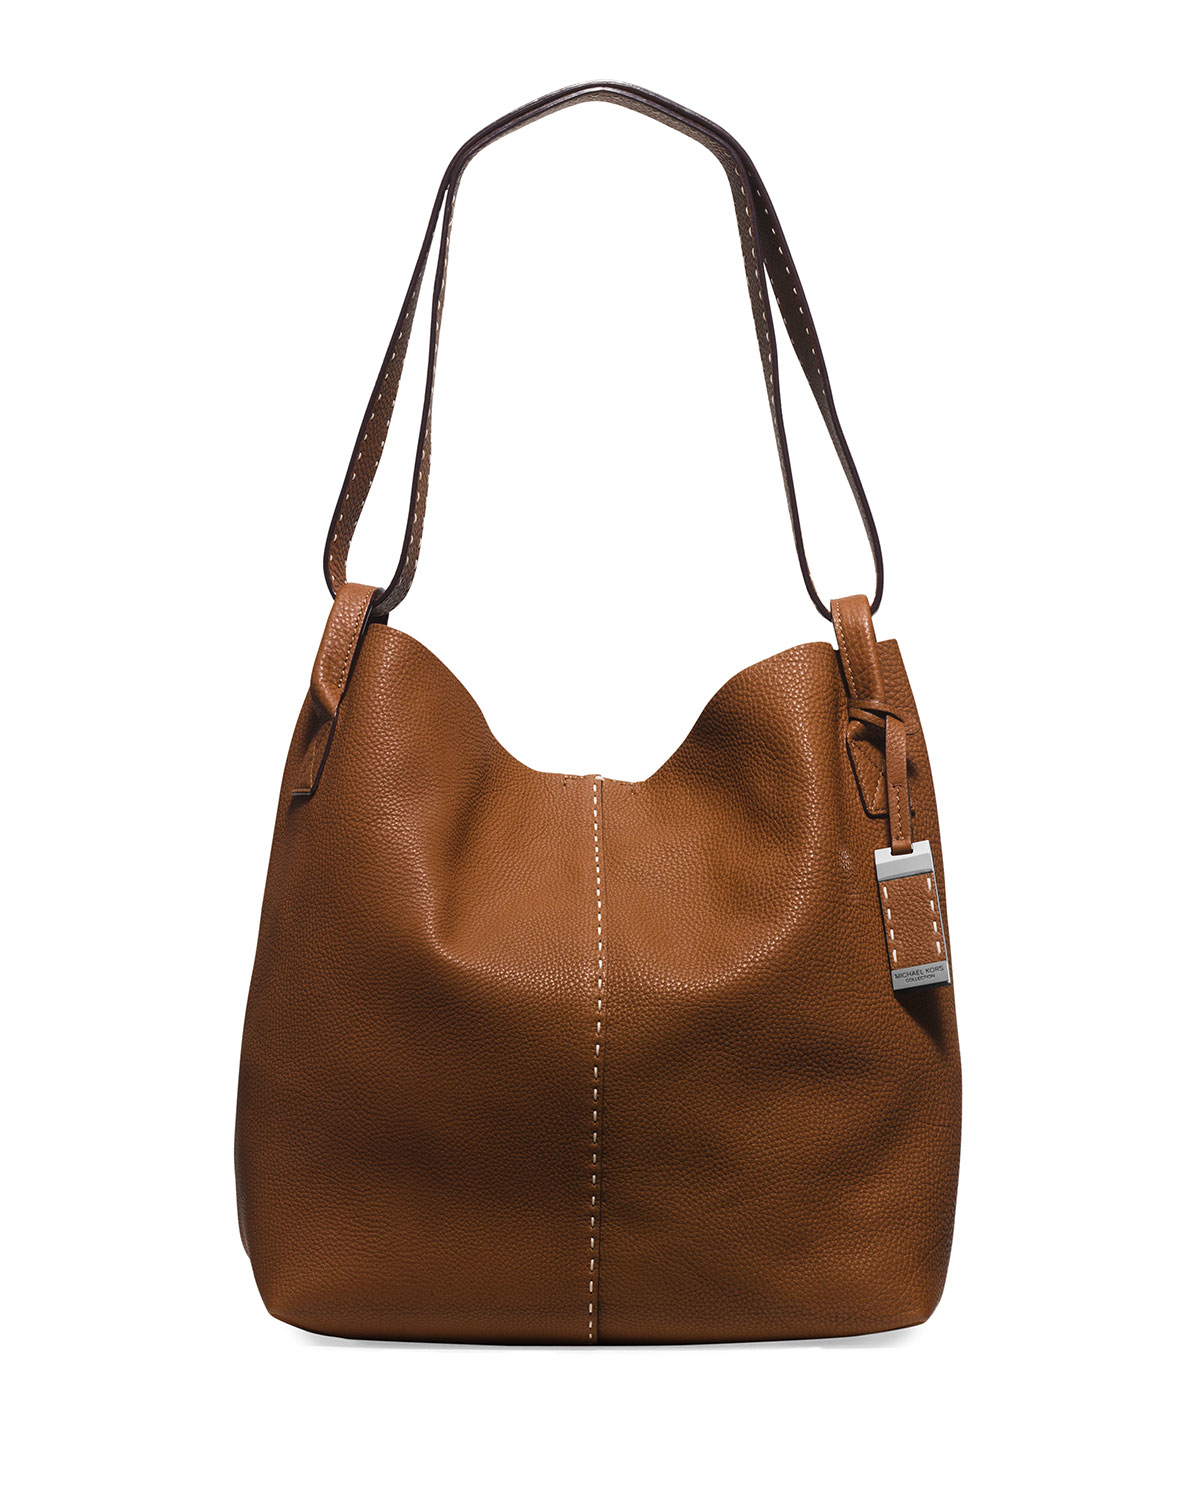 michael kors rogers large leather hobo bag in brown luggage lyst. Black Bedroom Furniture Sets. Home Design Ideas